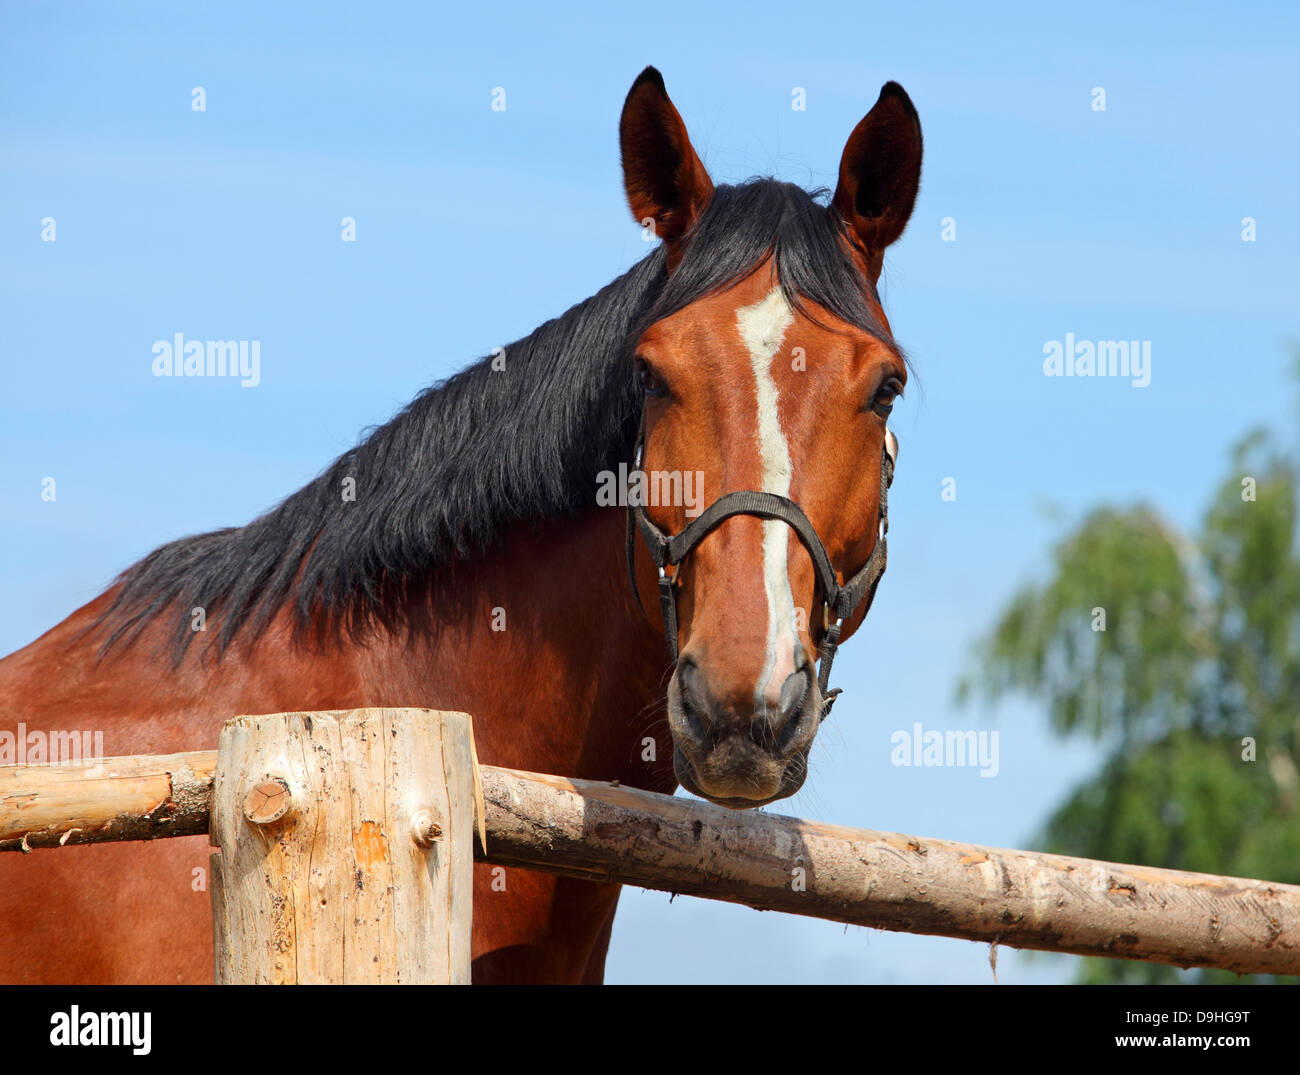 Beautiful horse looking over a wooden fence Stock Photo